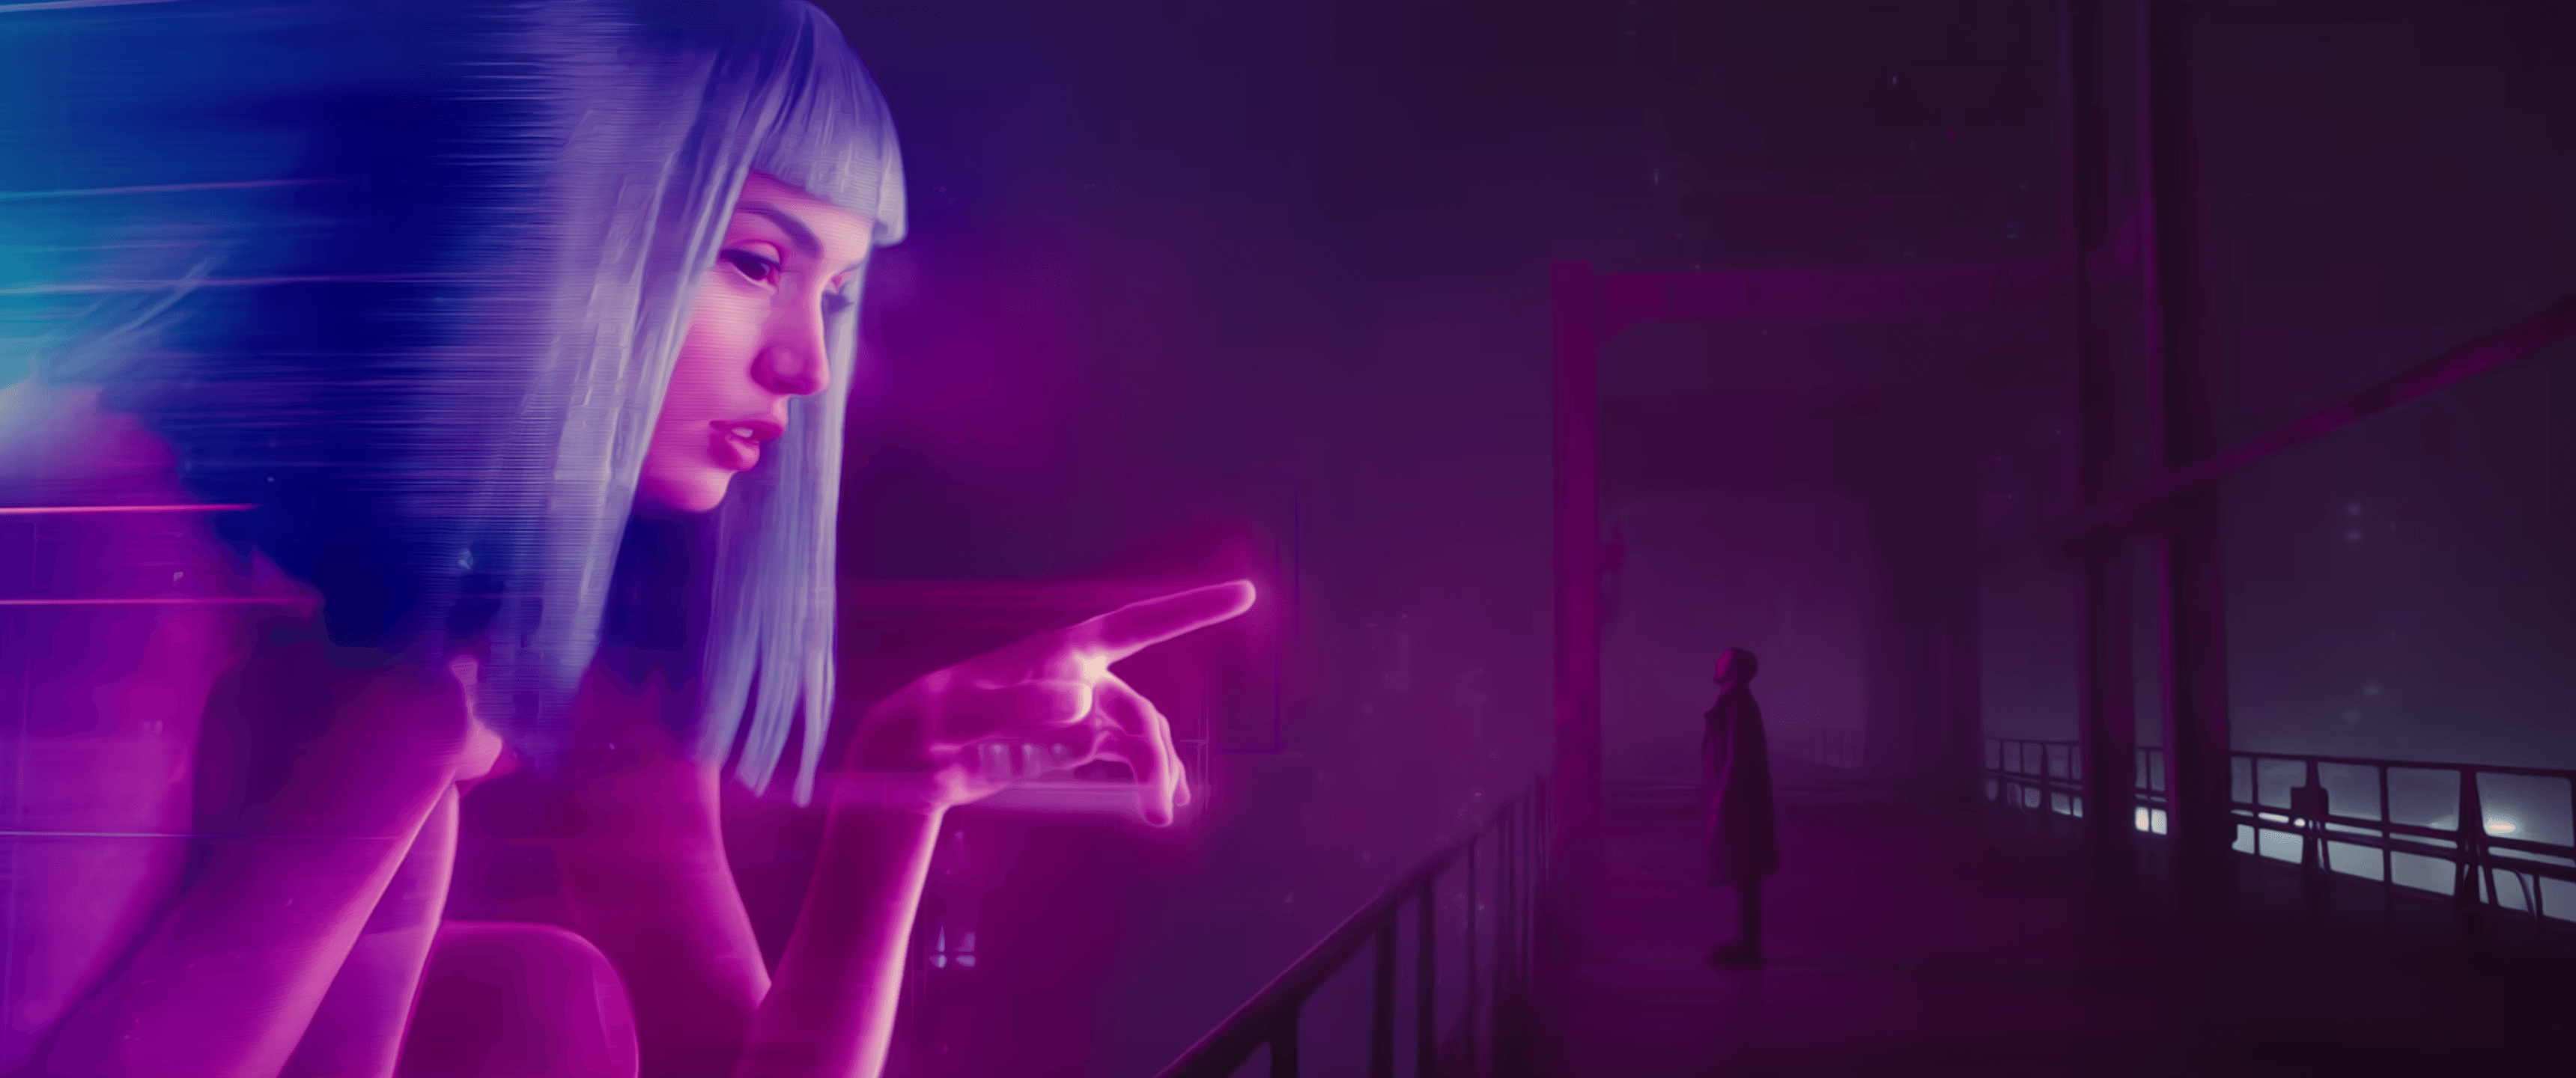 Blade Runner 4K UHD Wallpapers